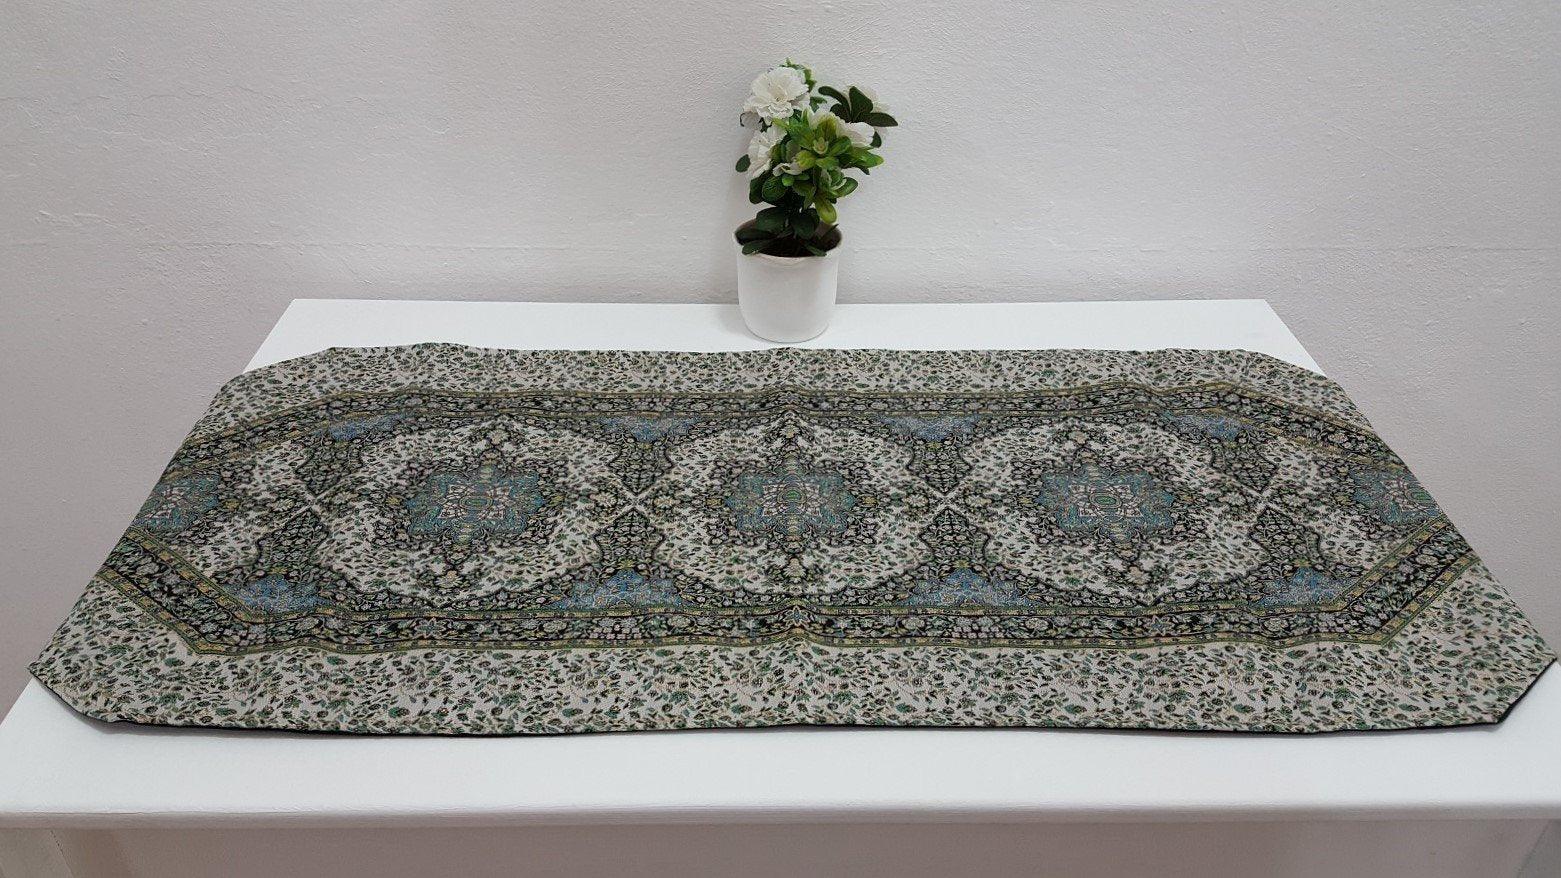 Decorative Table Runner with Exotic Design